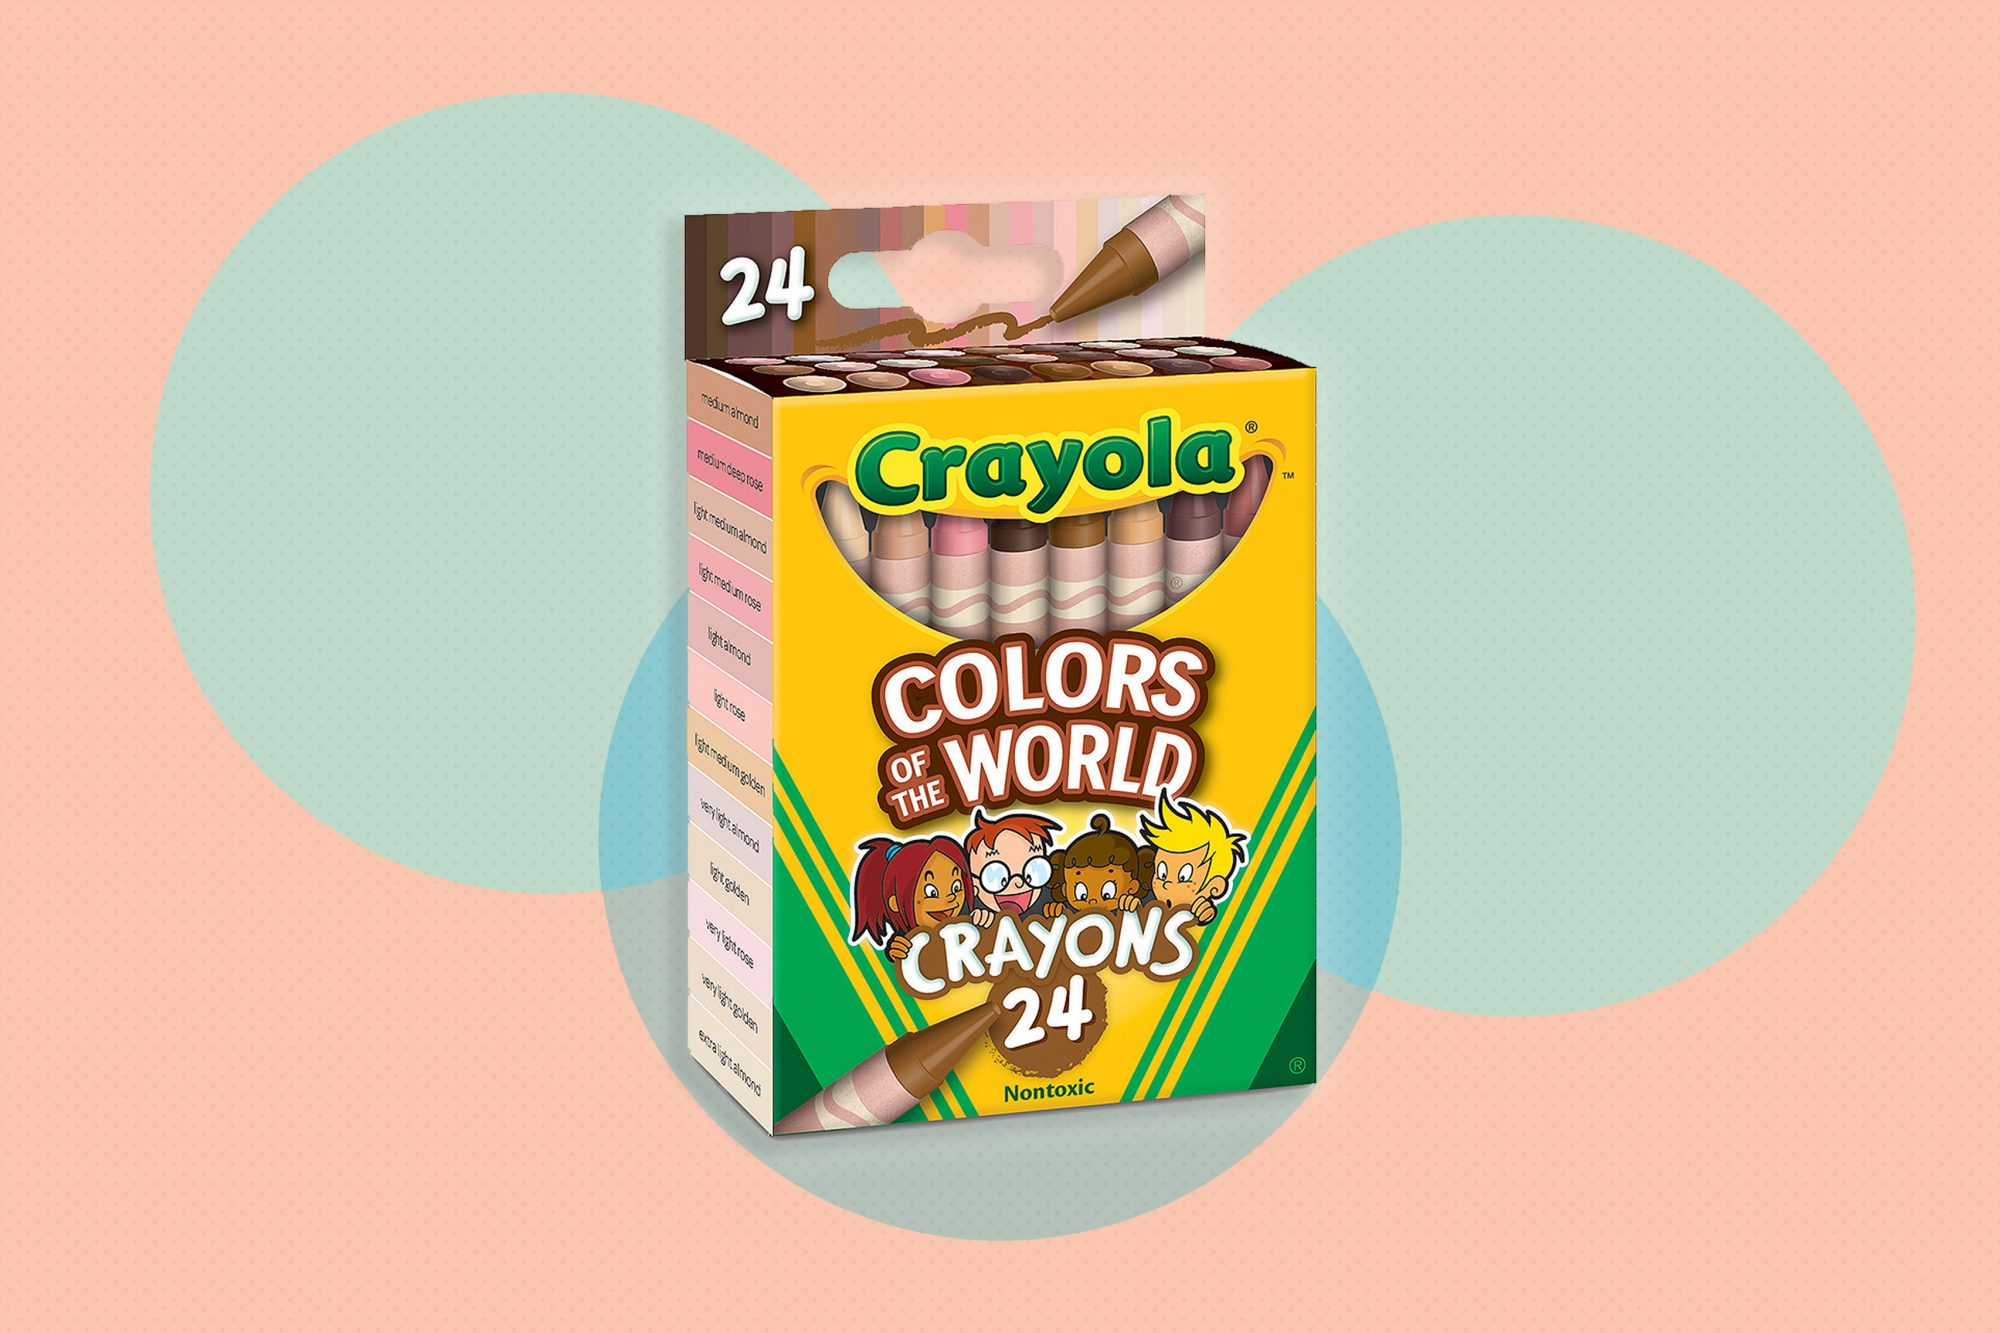 crayola colors of the world crayon box on patterned background